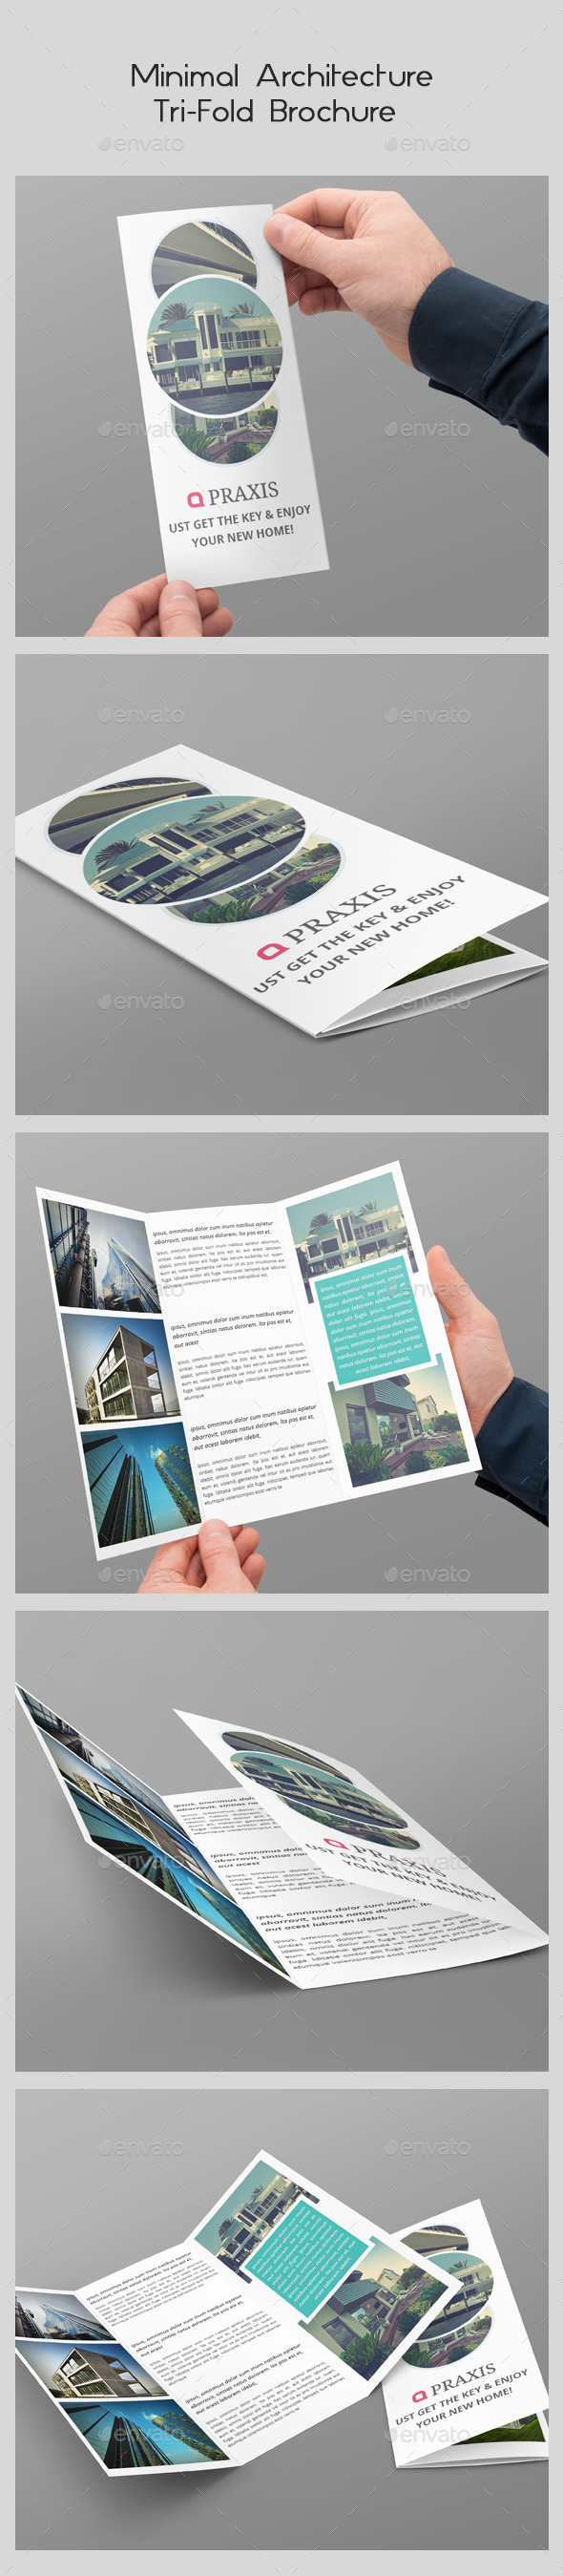 Minimal Architecture Tri-Fold Brochure  - Brochures Print Templates